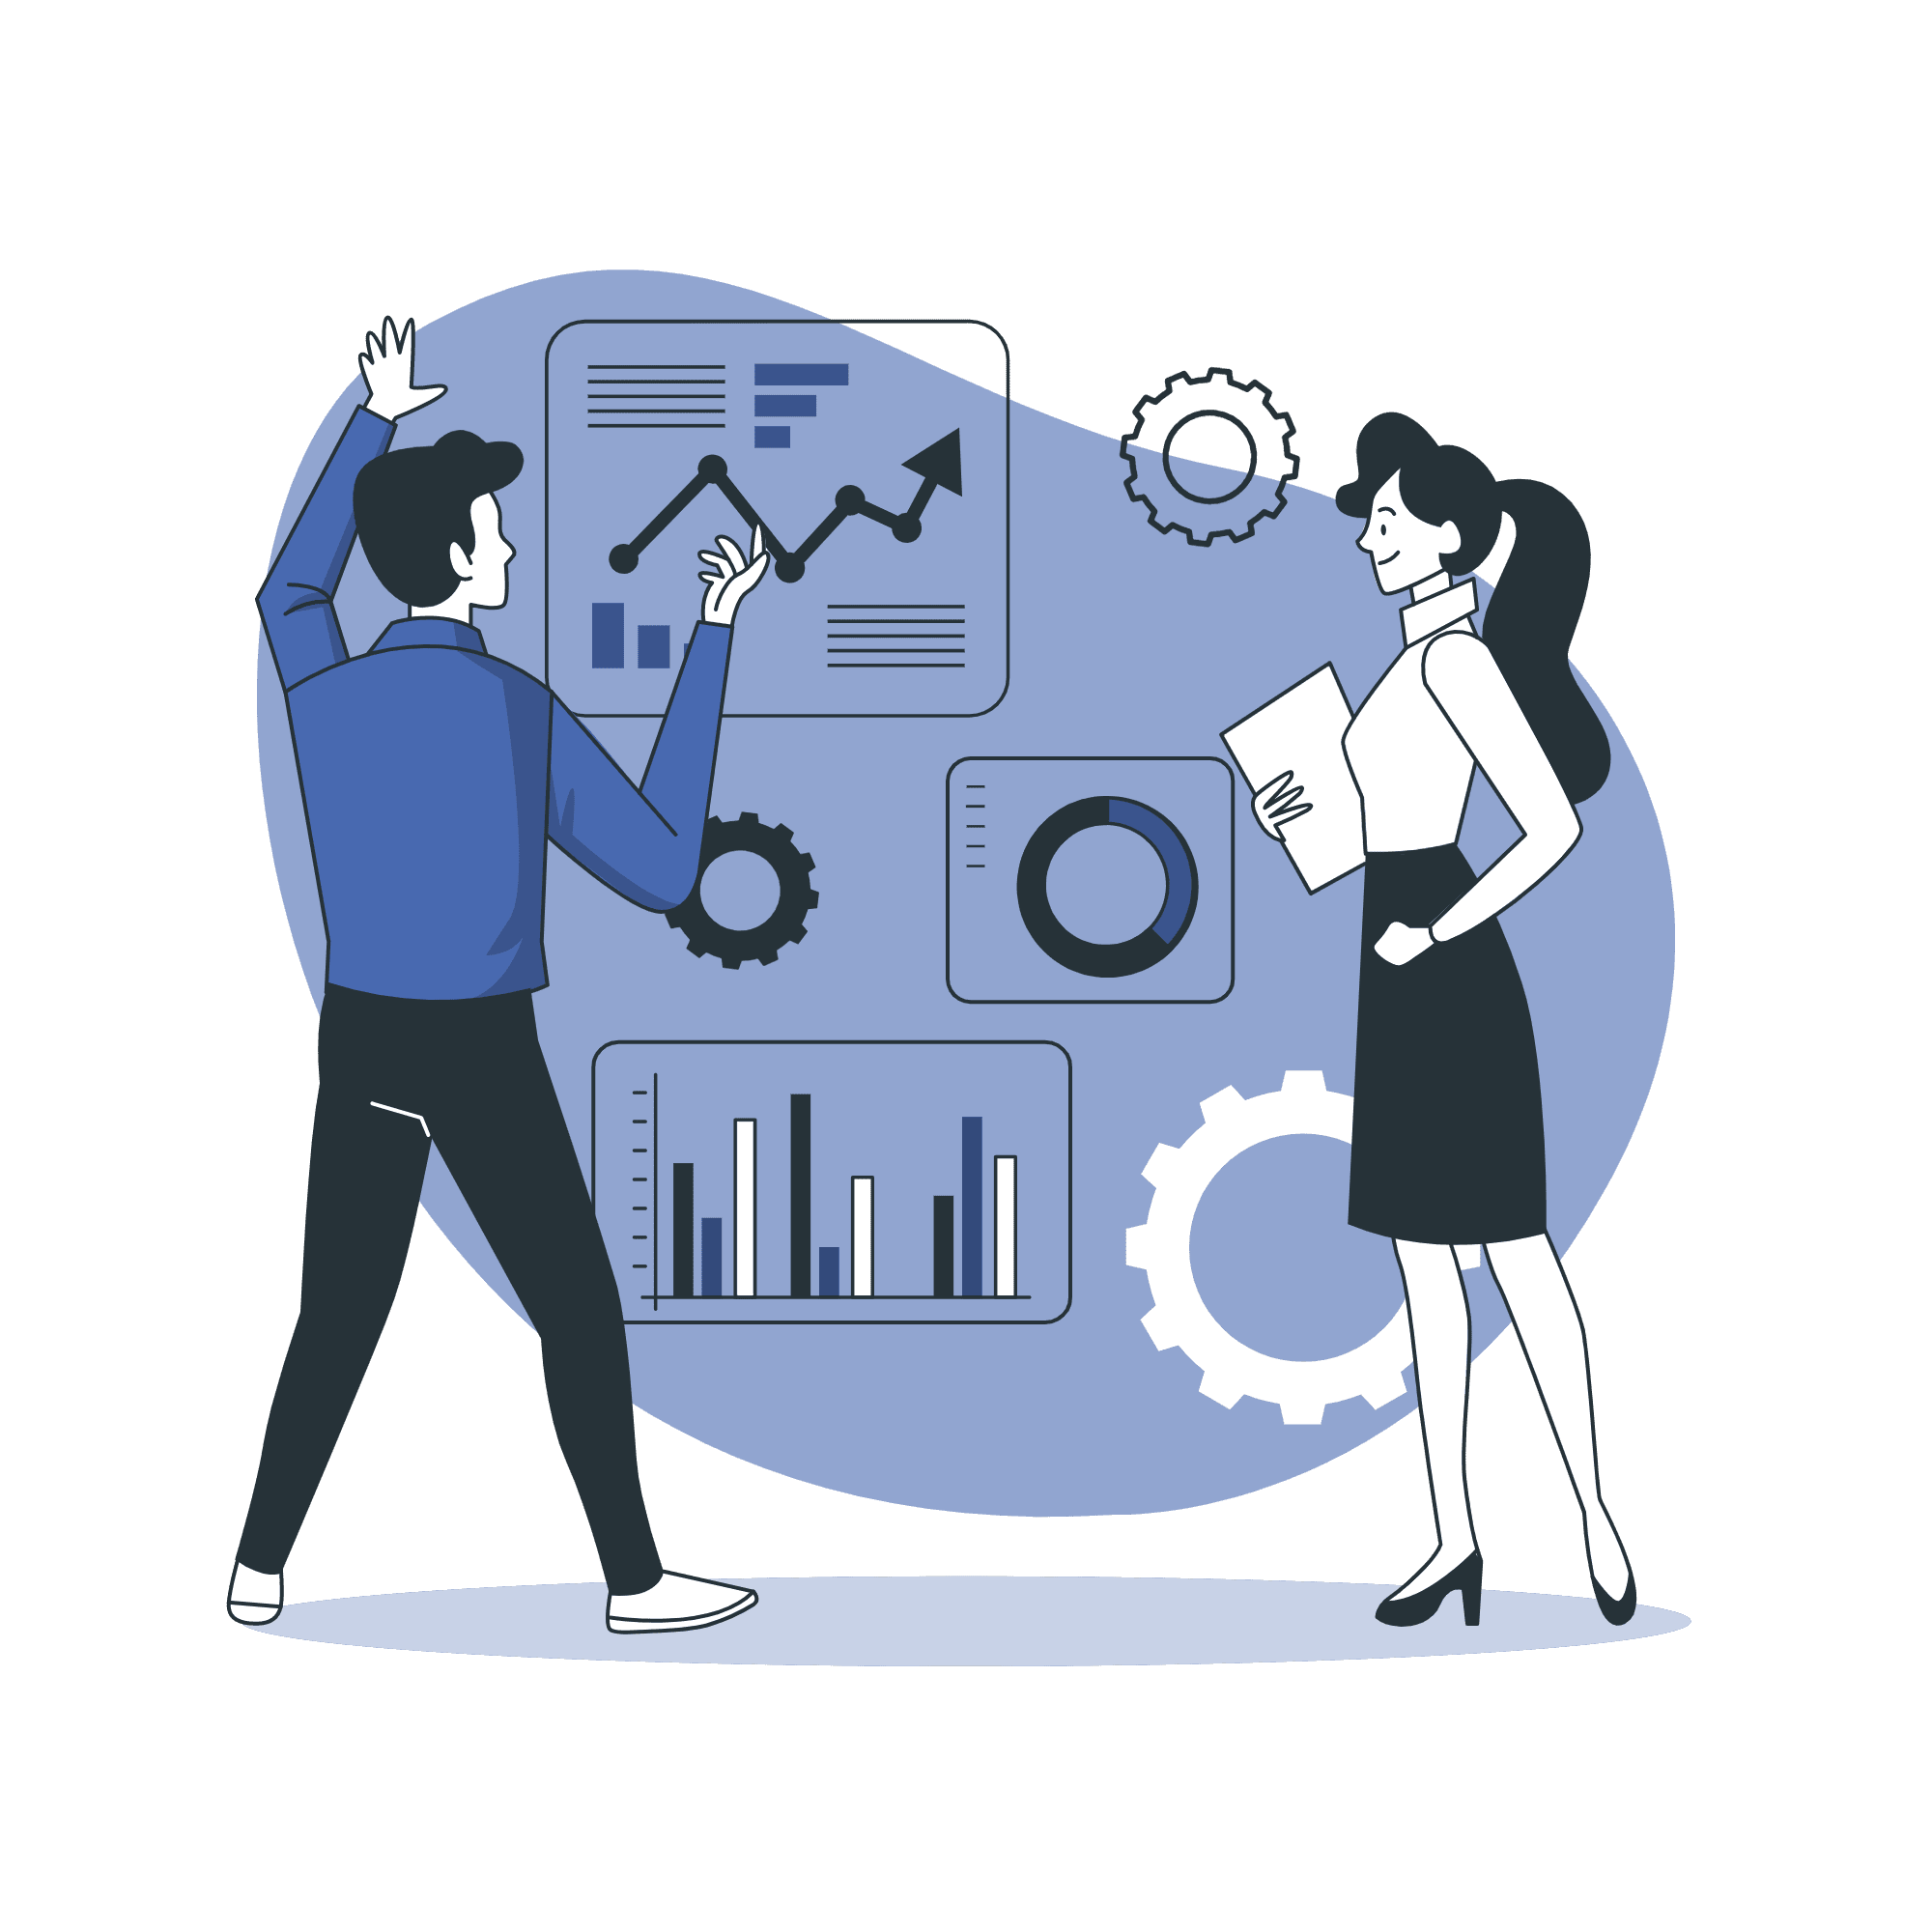 Colleagues analyzing digital marketing performance vector illustration